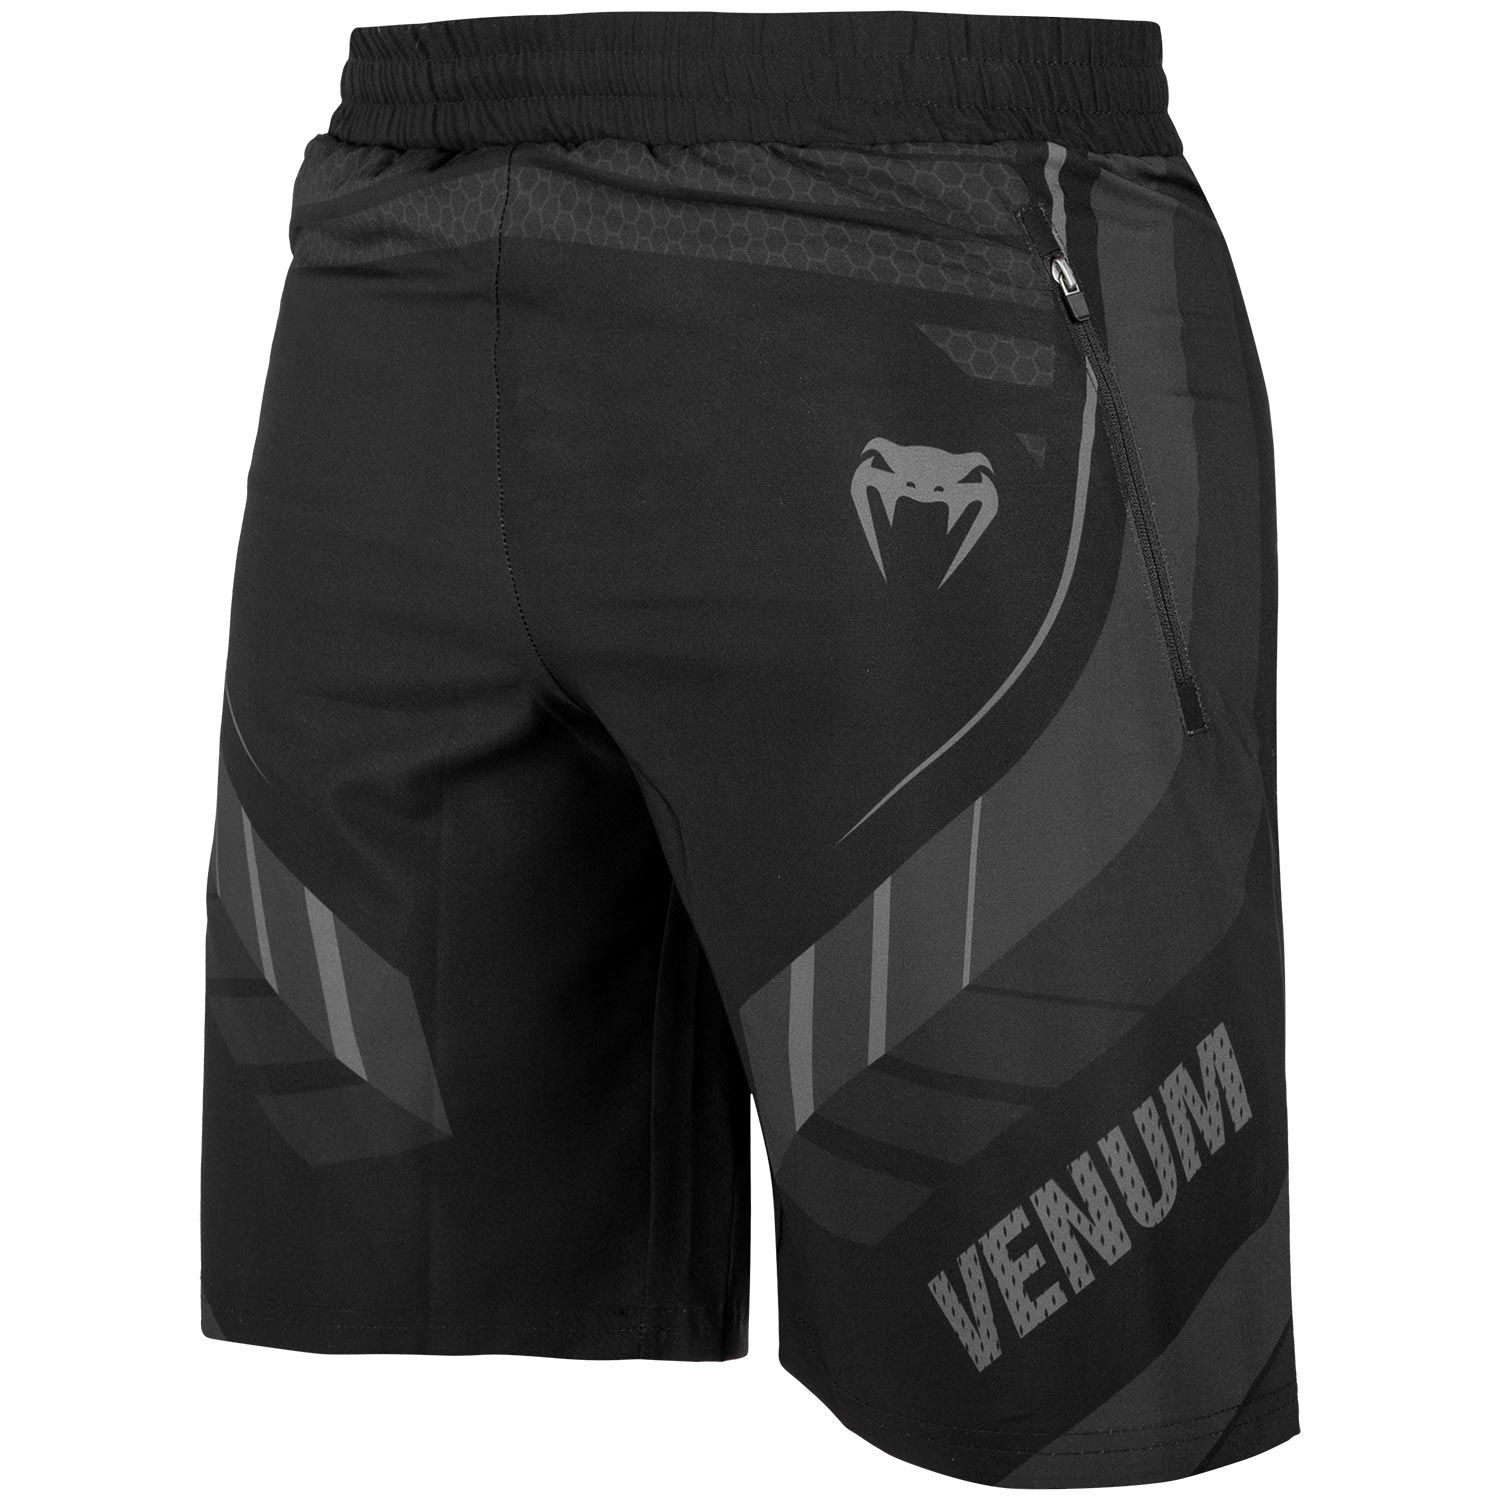 Venum Technical 2.0 Training Shorts Black | Minotaur Fight ...